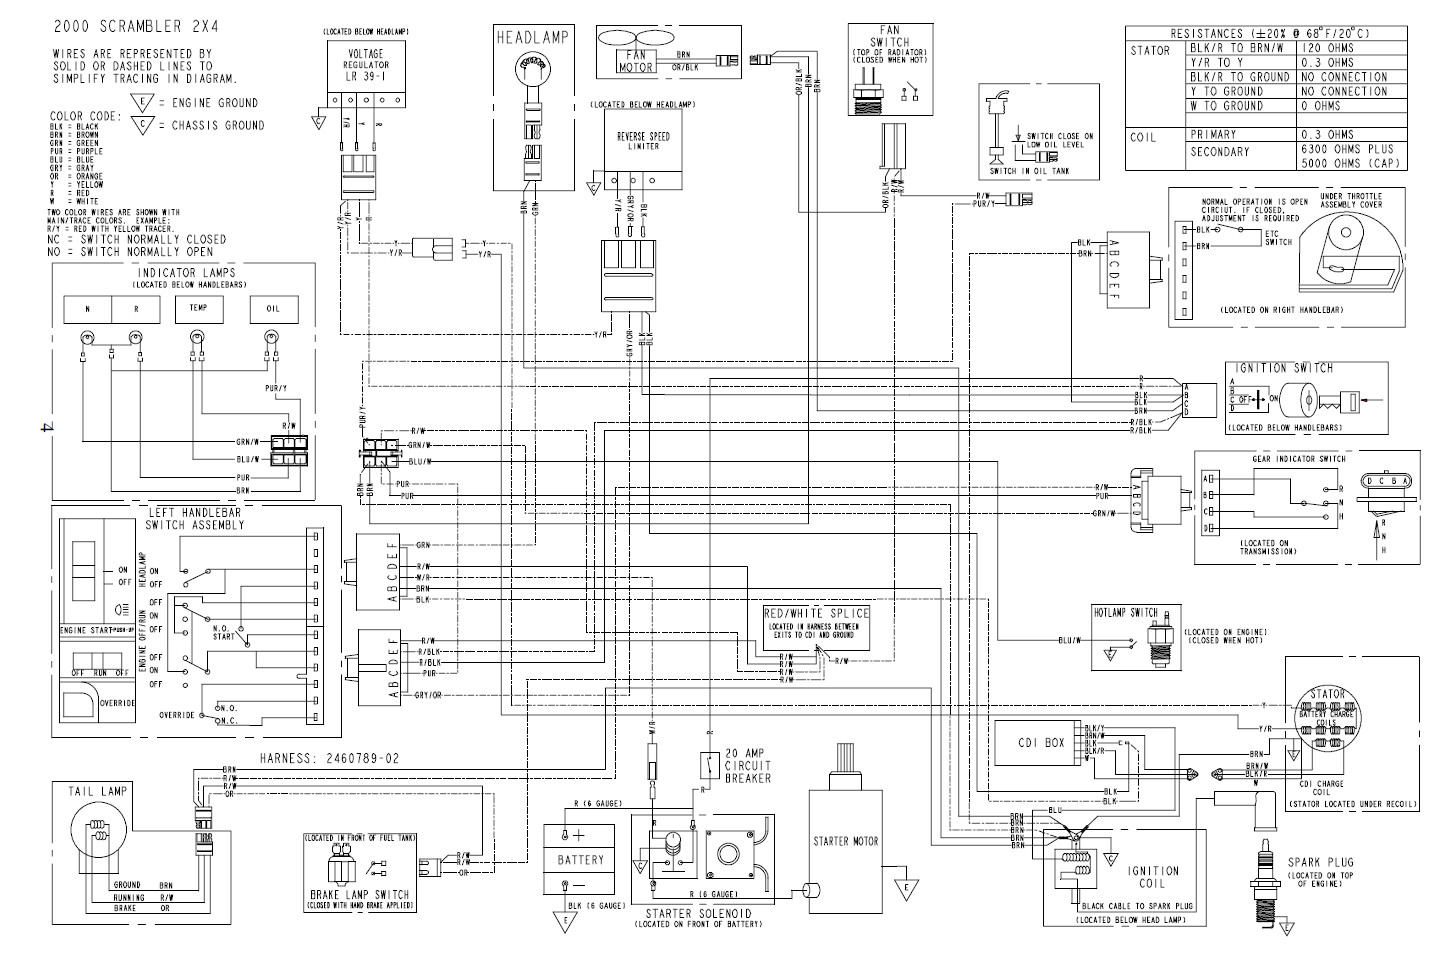 2015 polaris rzr 900 wiring diagram Download-polaris wiring diagram wire center u2022 rh wattatech co 2004 Polaris Sportsman 600 Wiring Diagram Polaris 16-i